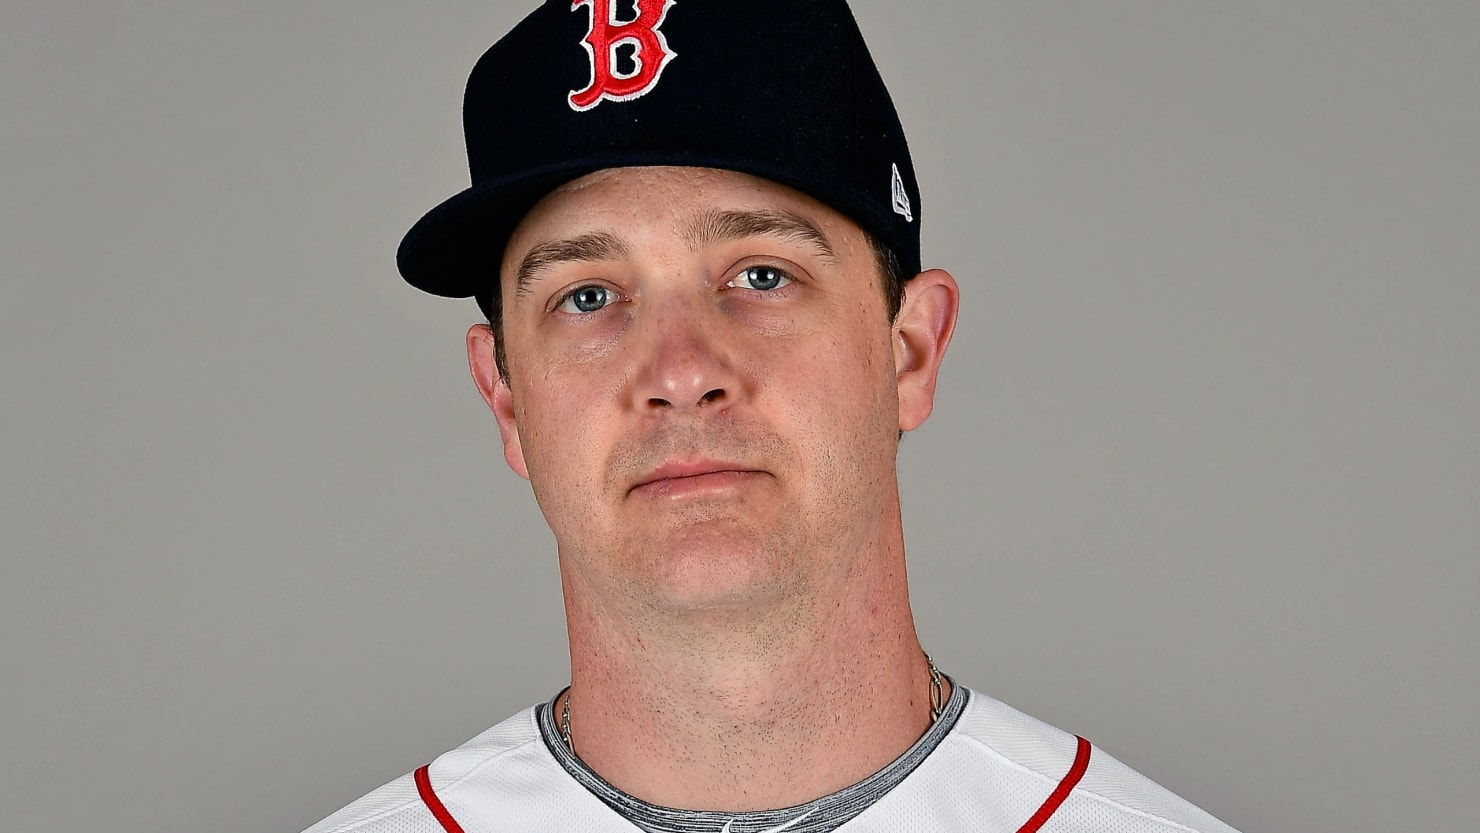 Boston Red Sox Pitcher Steven Wright Suspended 80 Games for Positive Drug Test